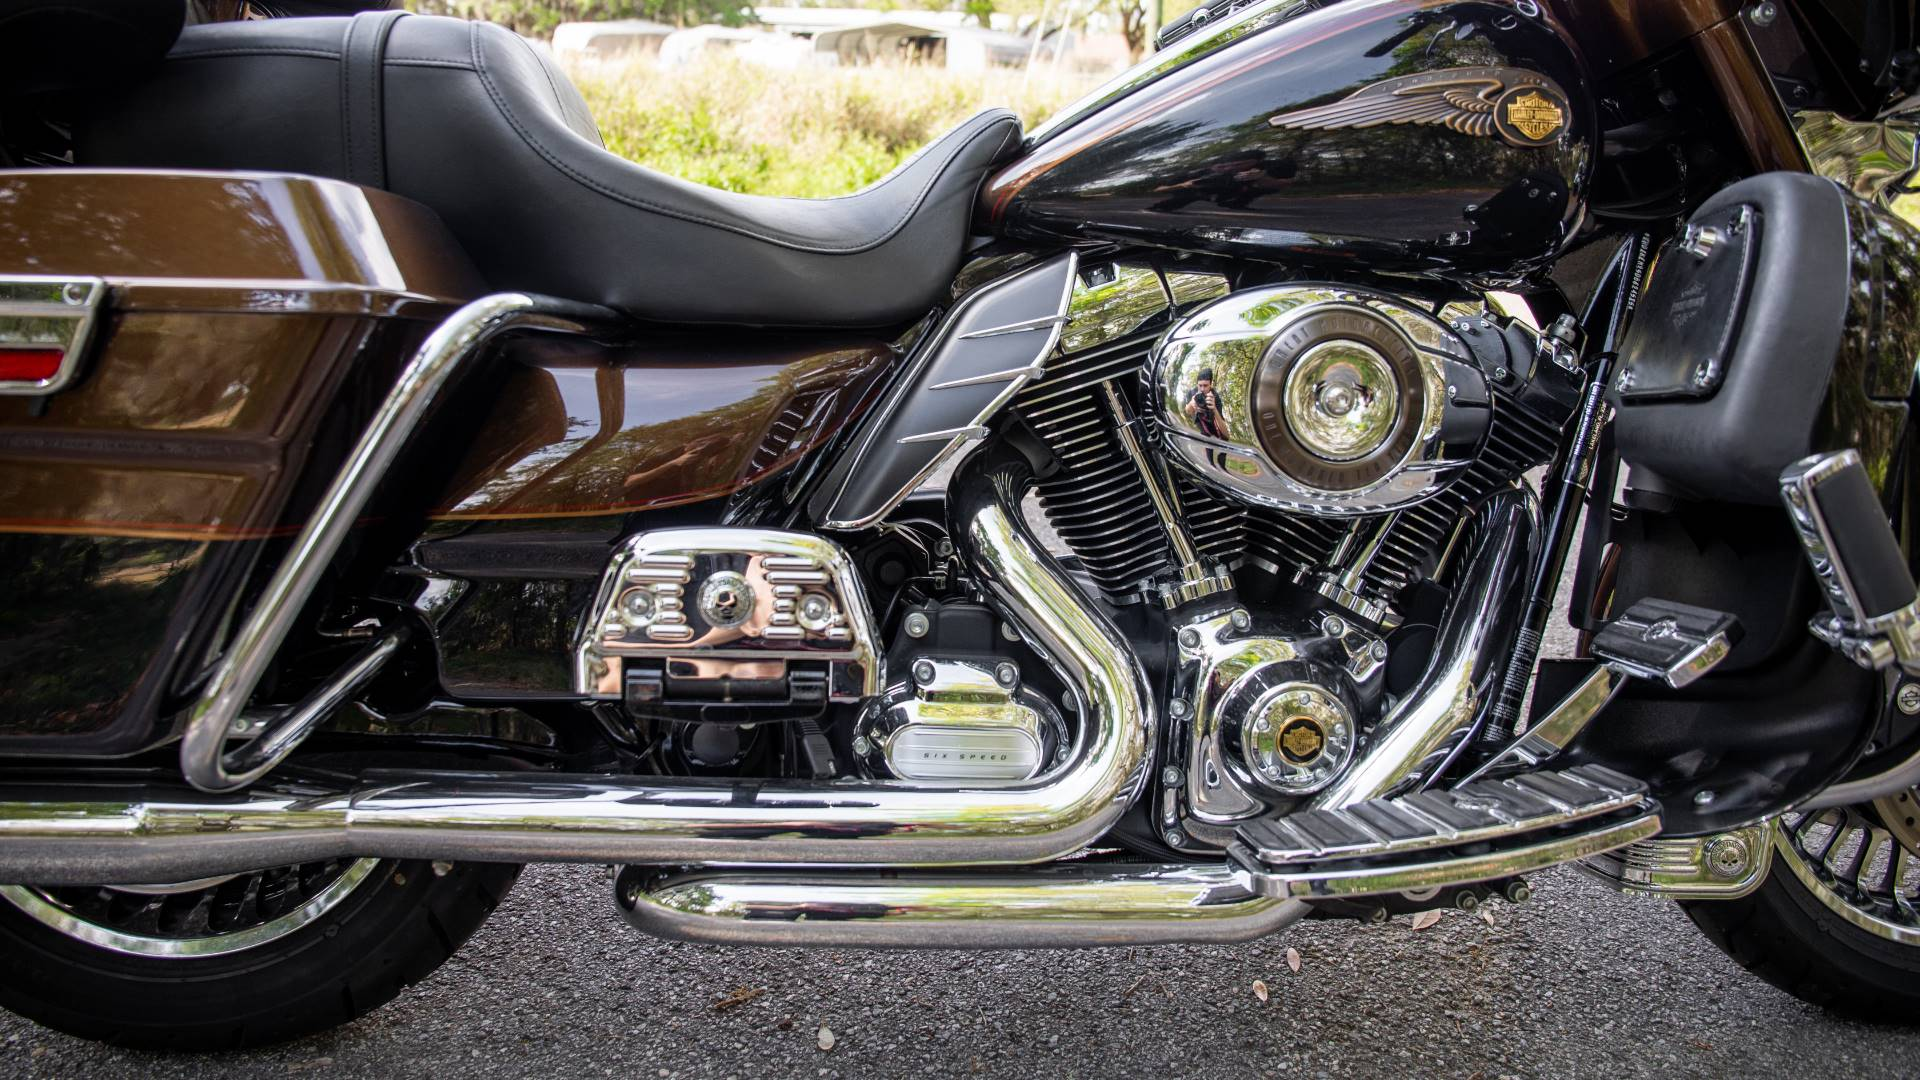 2013 Harley-Davidson Electra Glide® Ultra Limited 110th Anniversary Edition in Lakeland, Florida - Photo 3